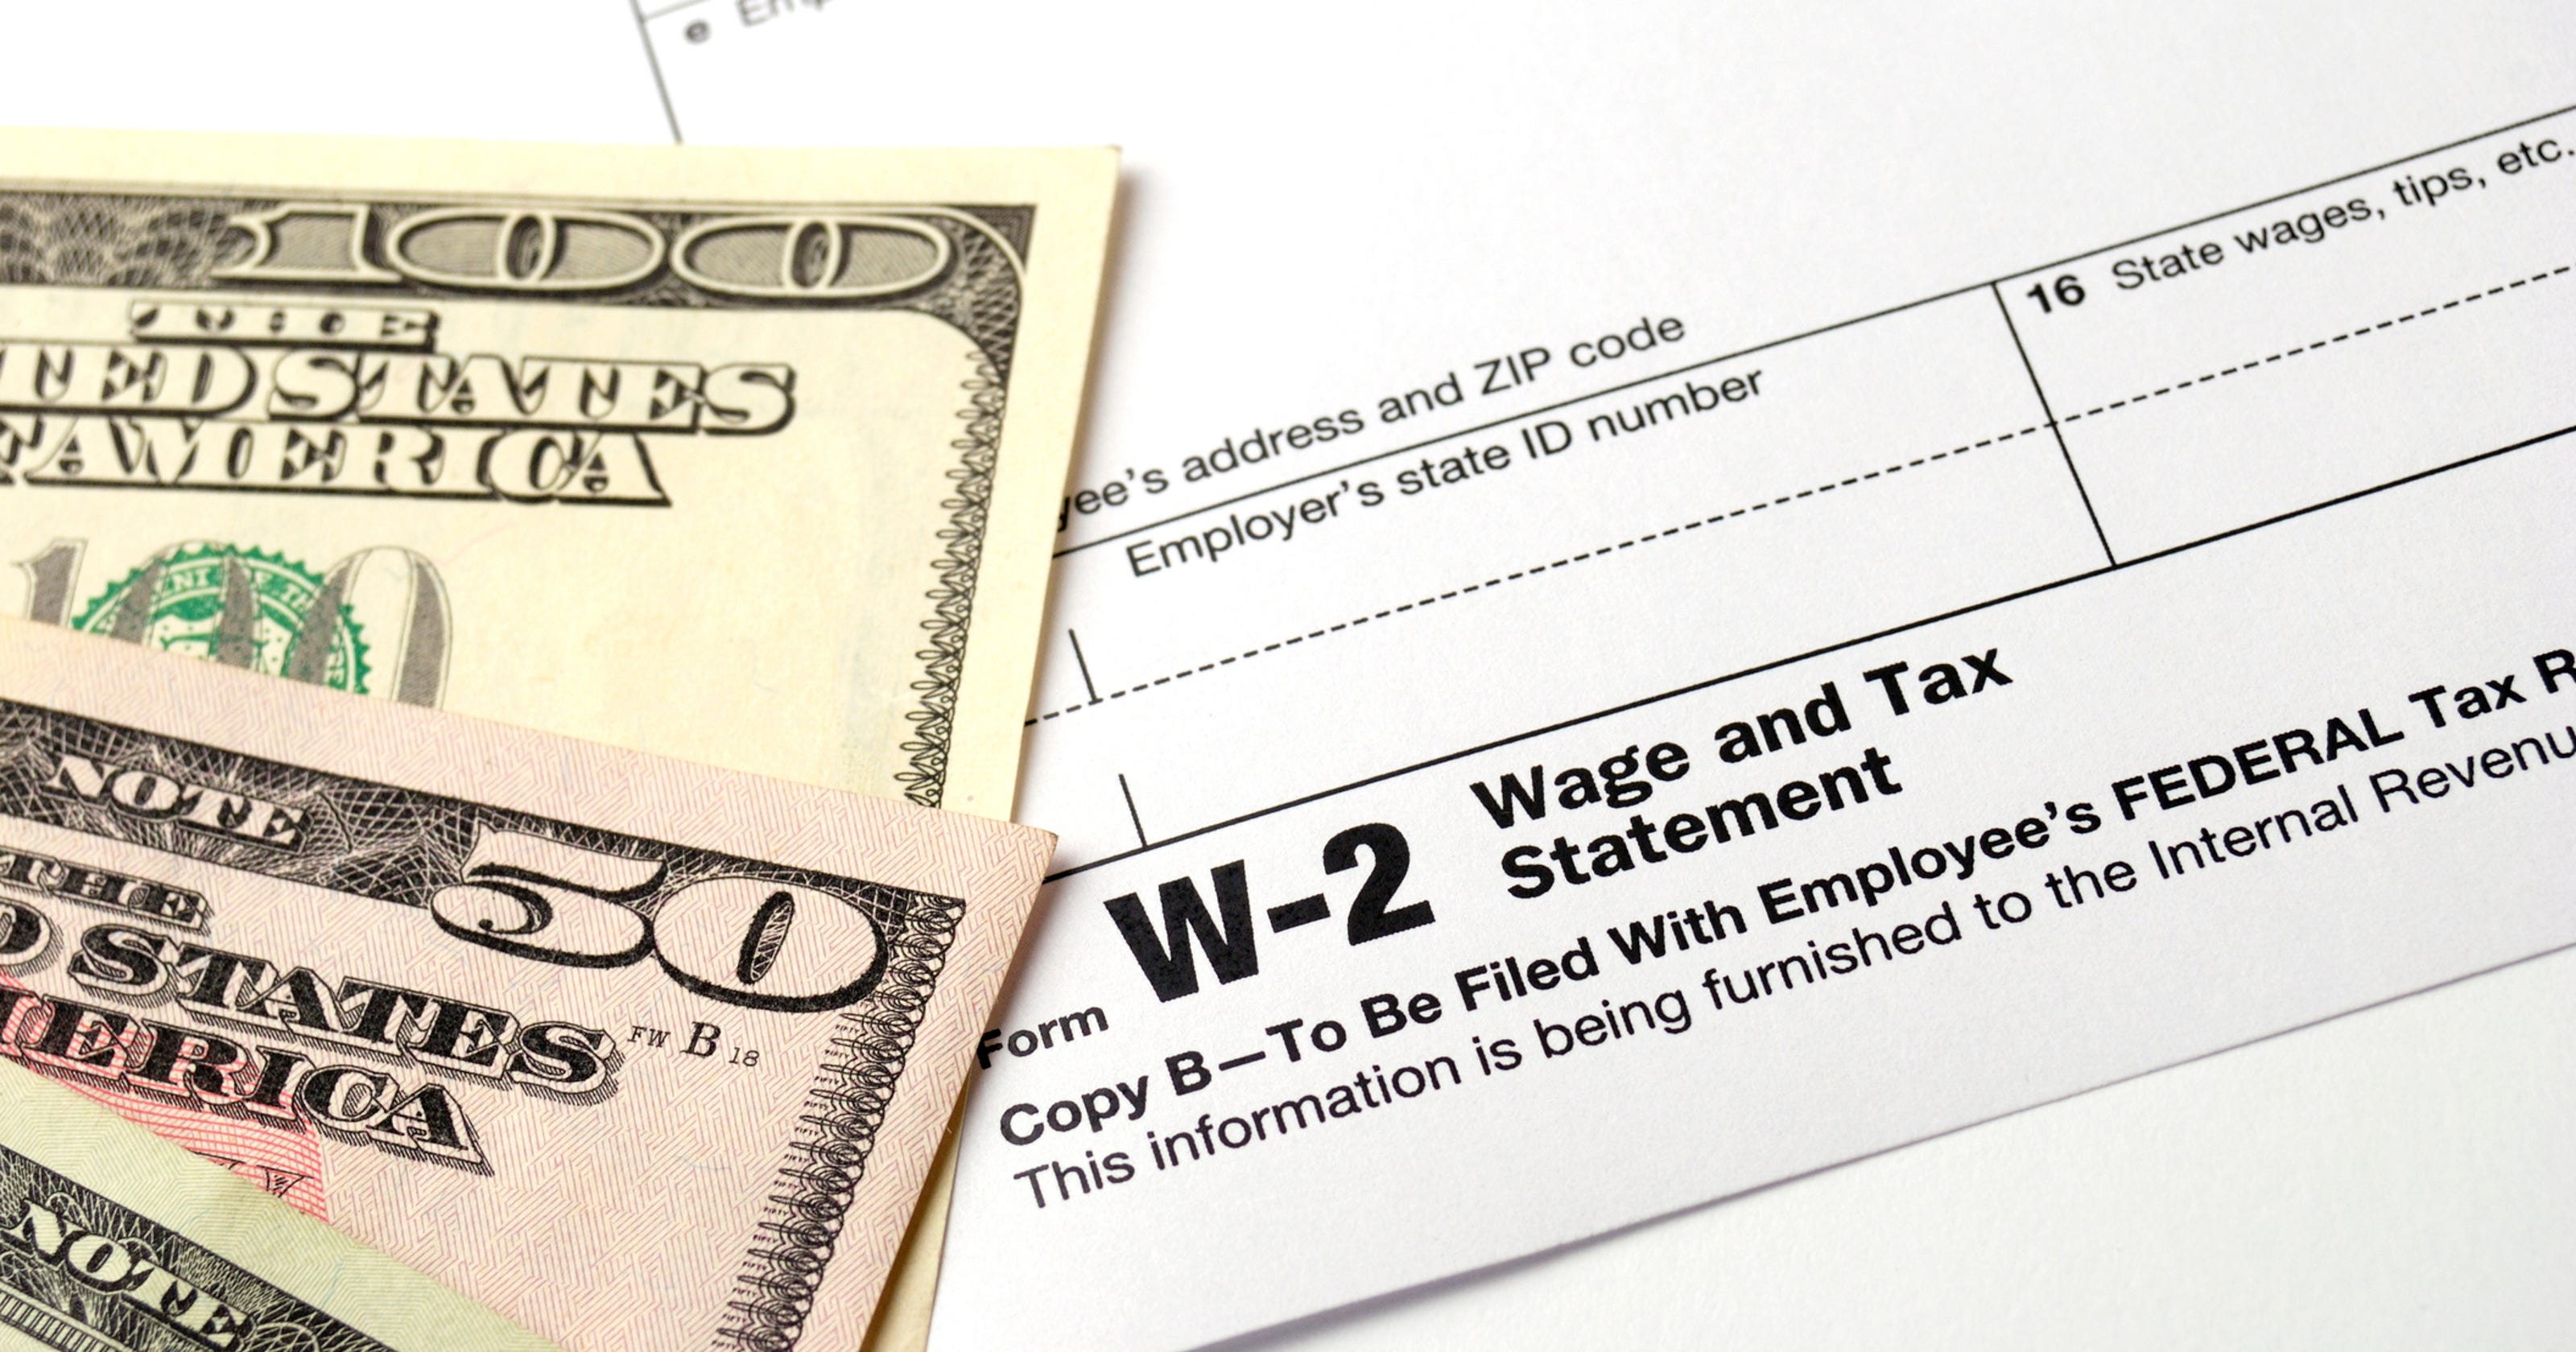 Haven\'t received your W-2? Take these steps